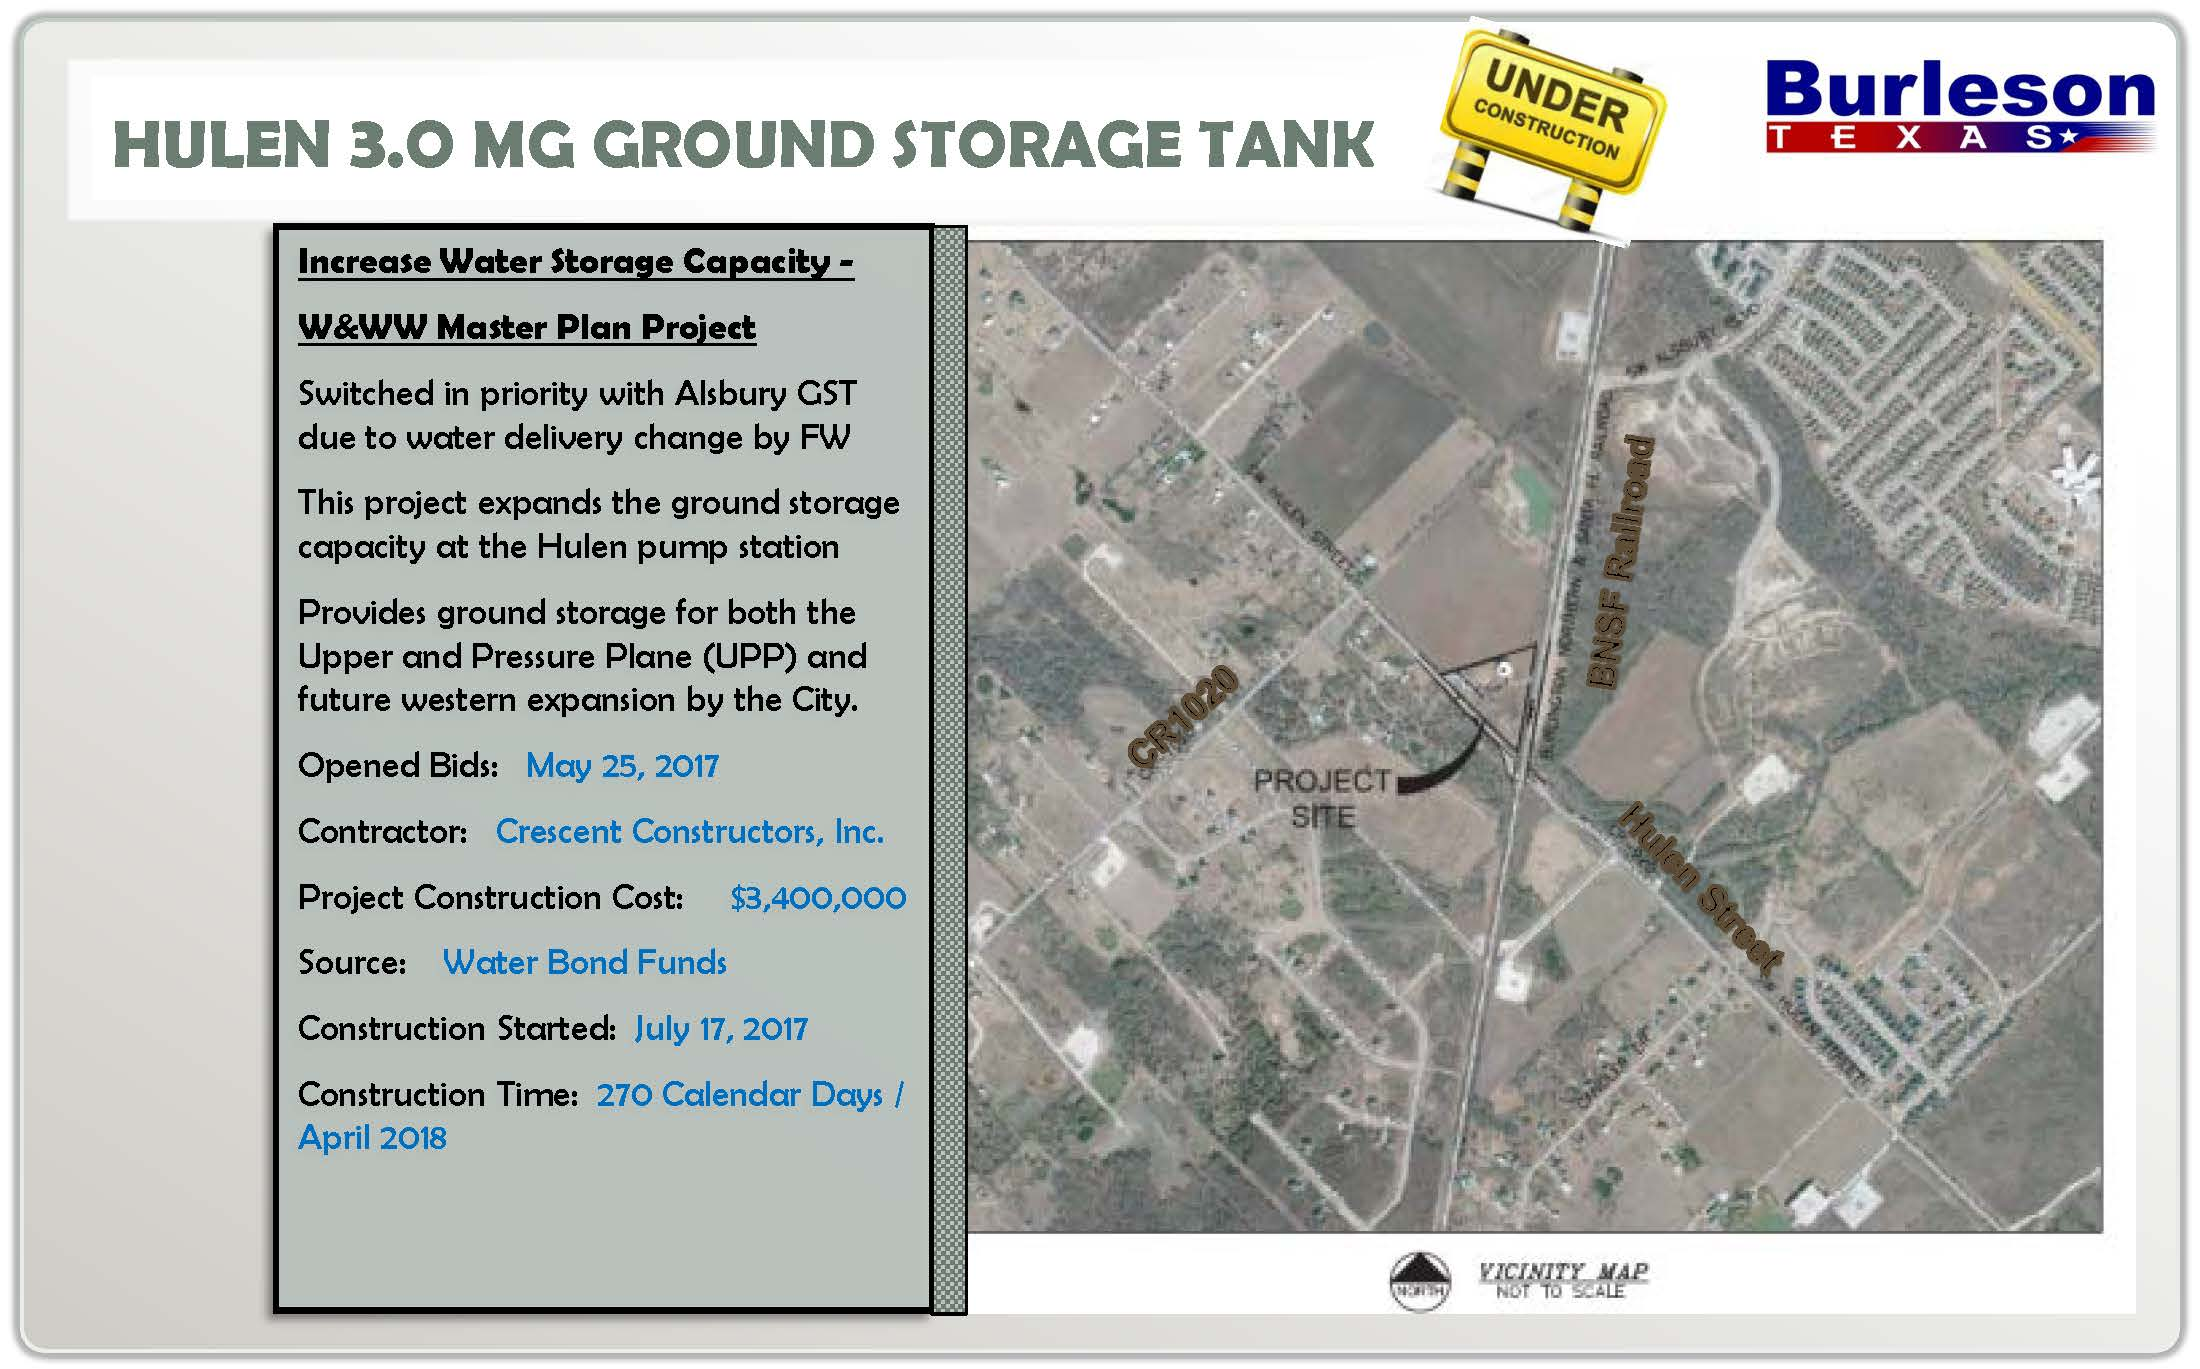 Hulen ground storage